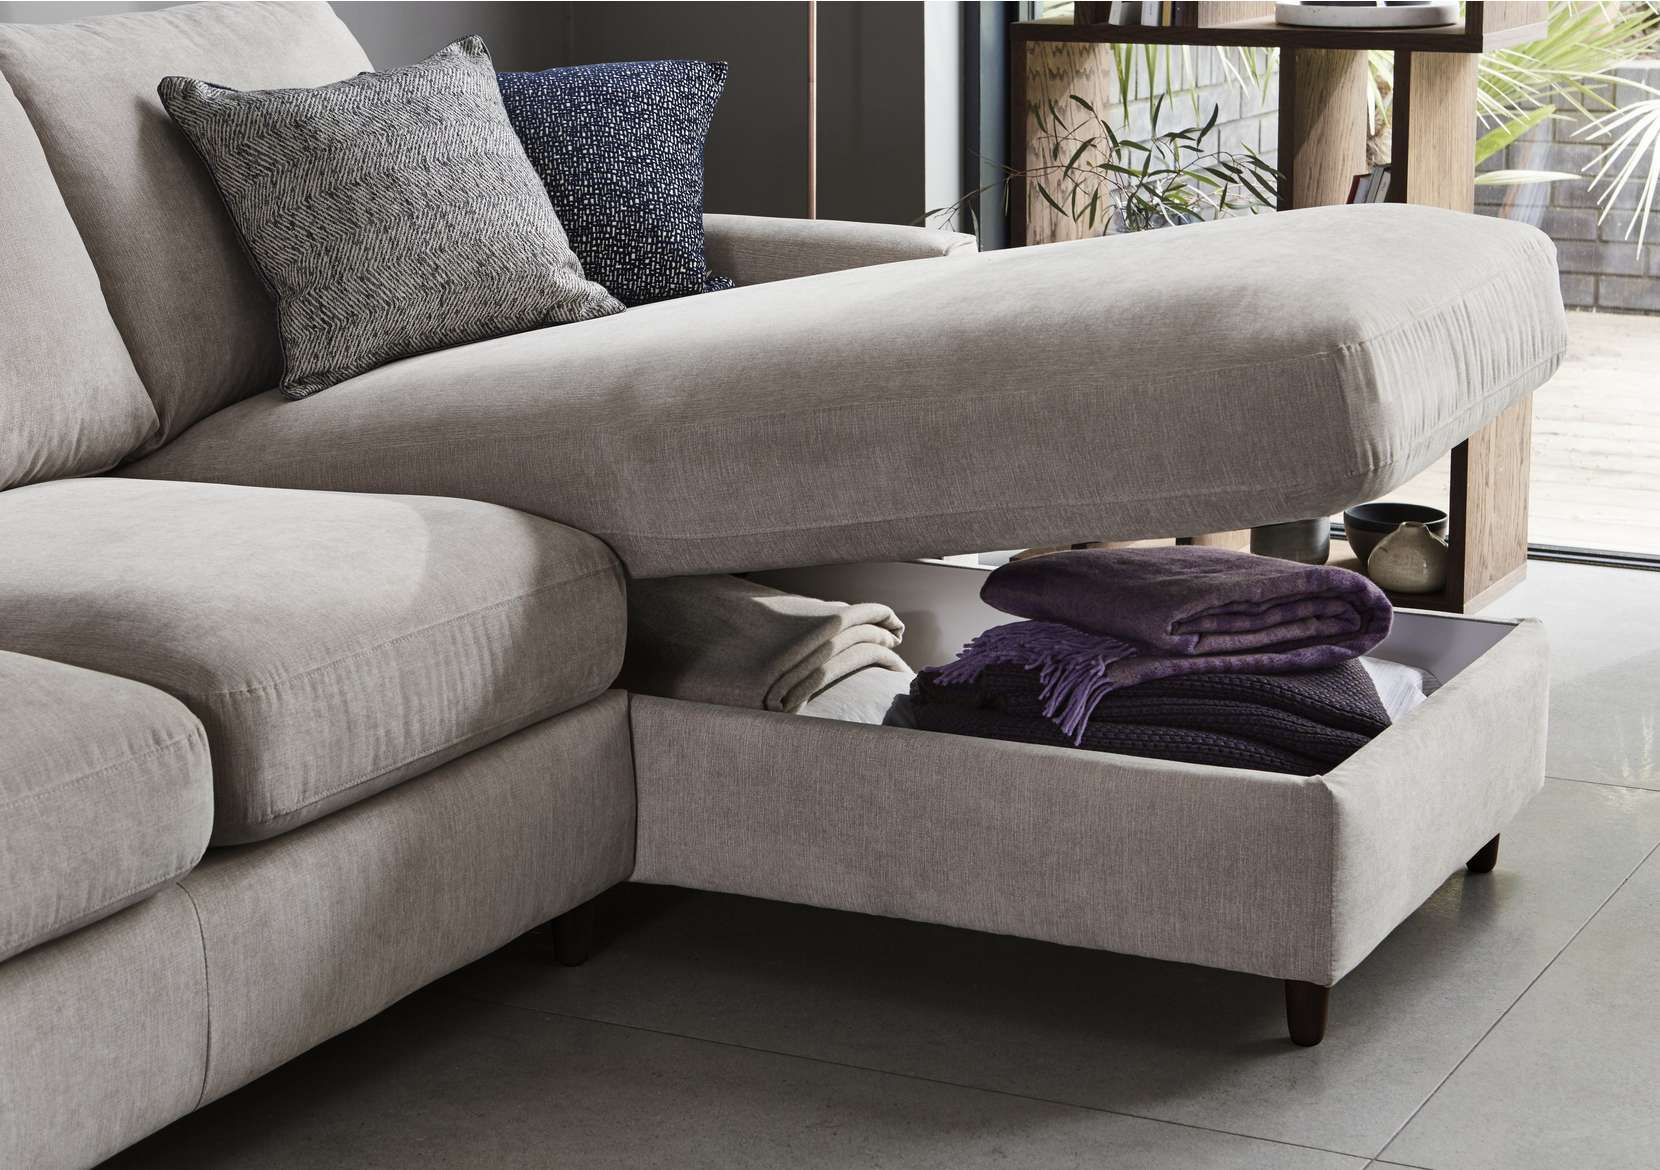 Esprit Fabric Chaise Sofa Bed With Storage In 2020 Sofa Bed With Storage Sofa Bed Design Chaise Sofa